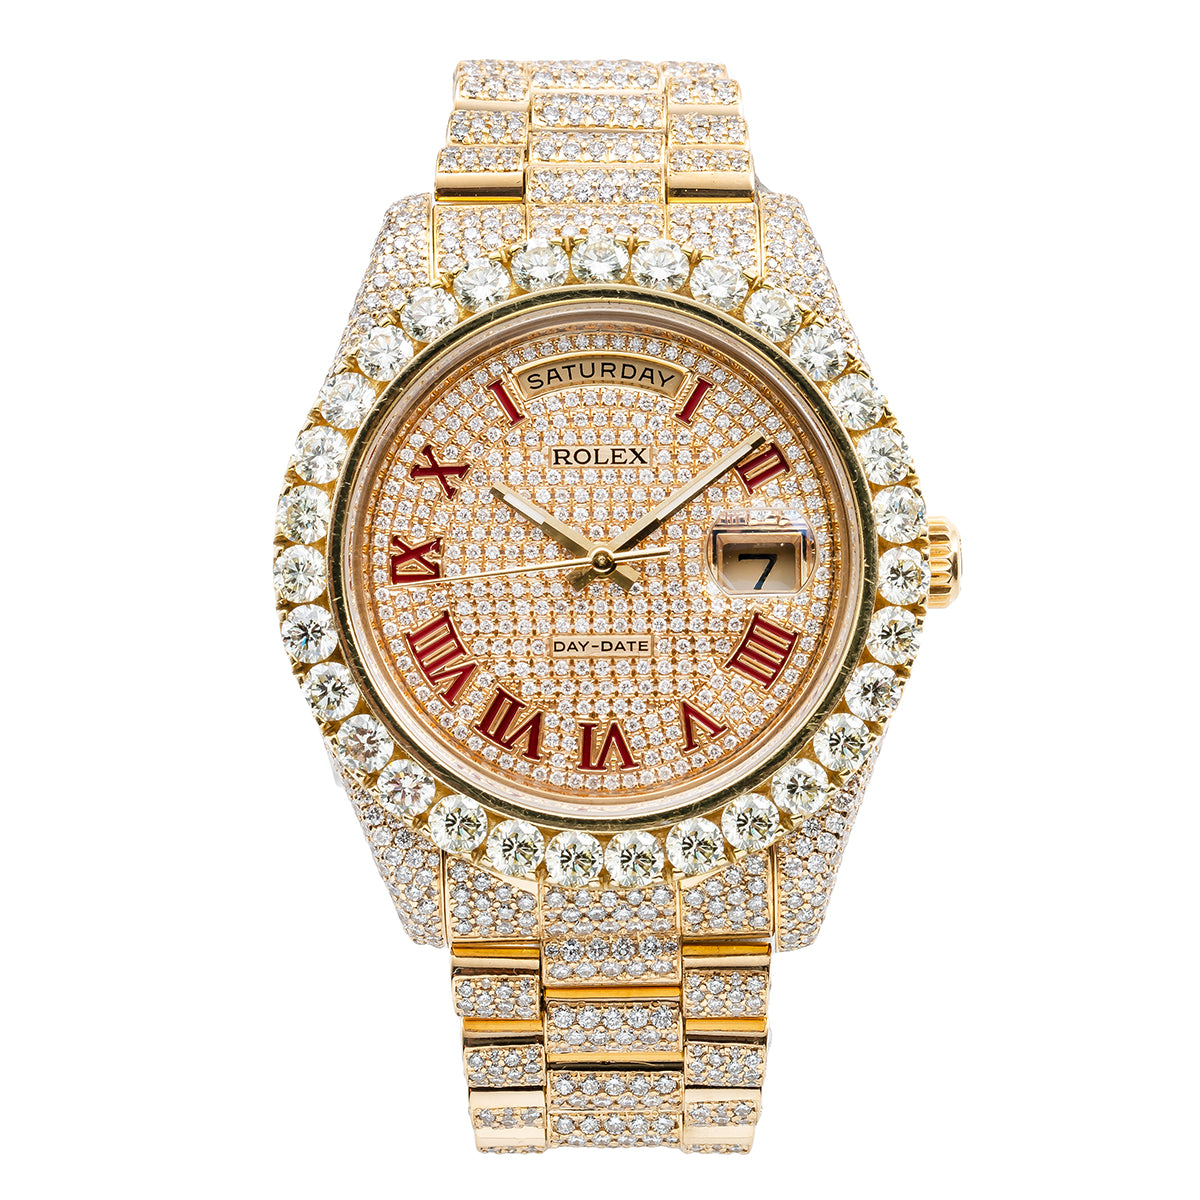 02b3b8d39d728 18K Yellow Gold Rolex Day-Date II 218238 41mm Champagne with Red Roman  Numerals Dial